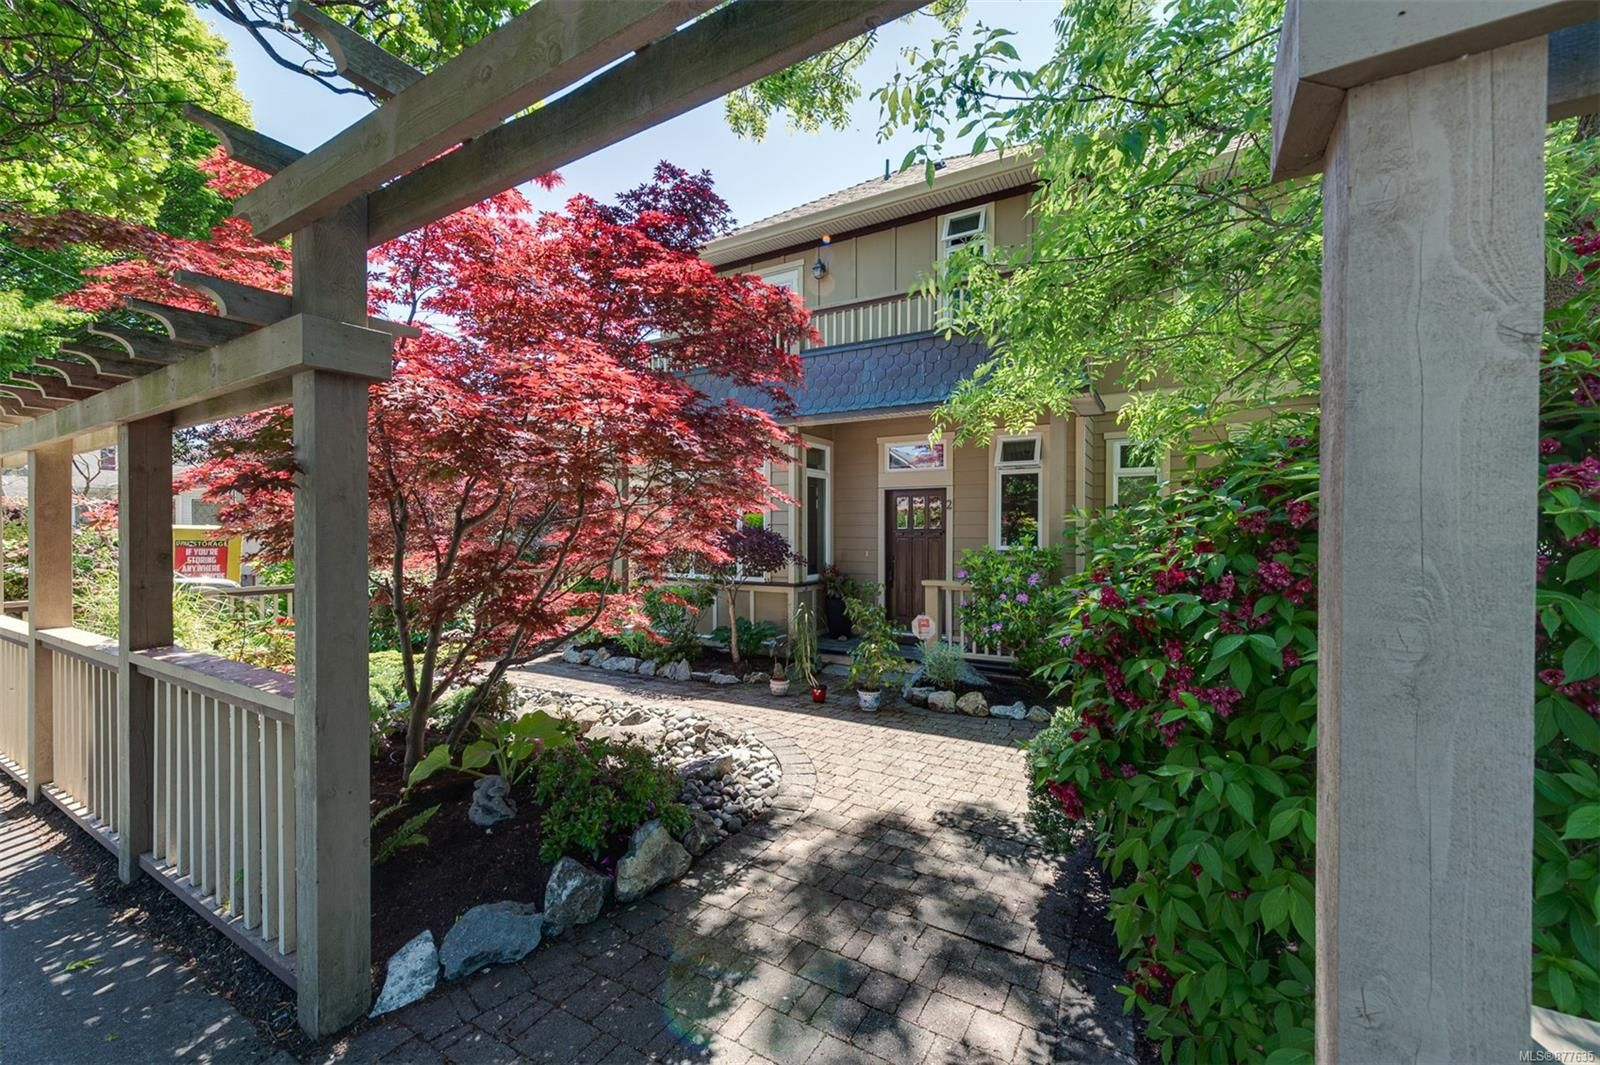 Main Photo: 3 209 Superior St in : Vi James Bay Row/Townhouse for sale (Victoria)  : MLS®# 877635